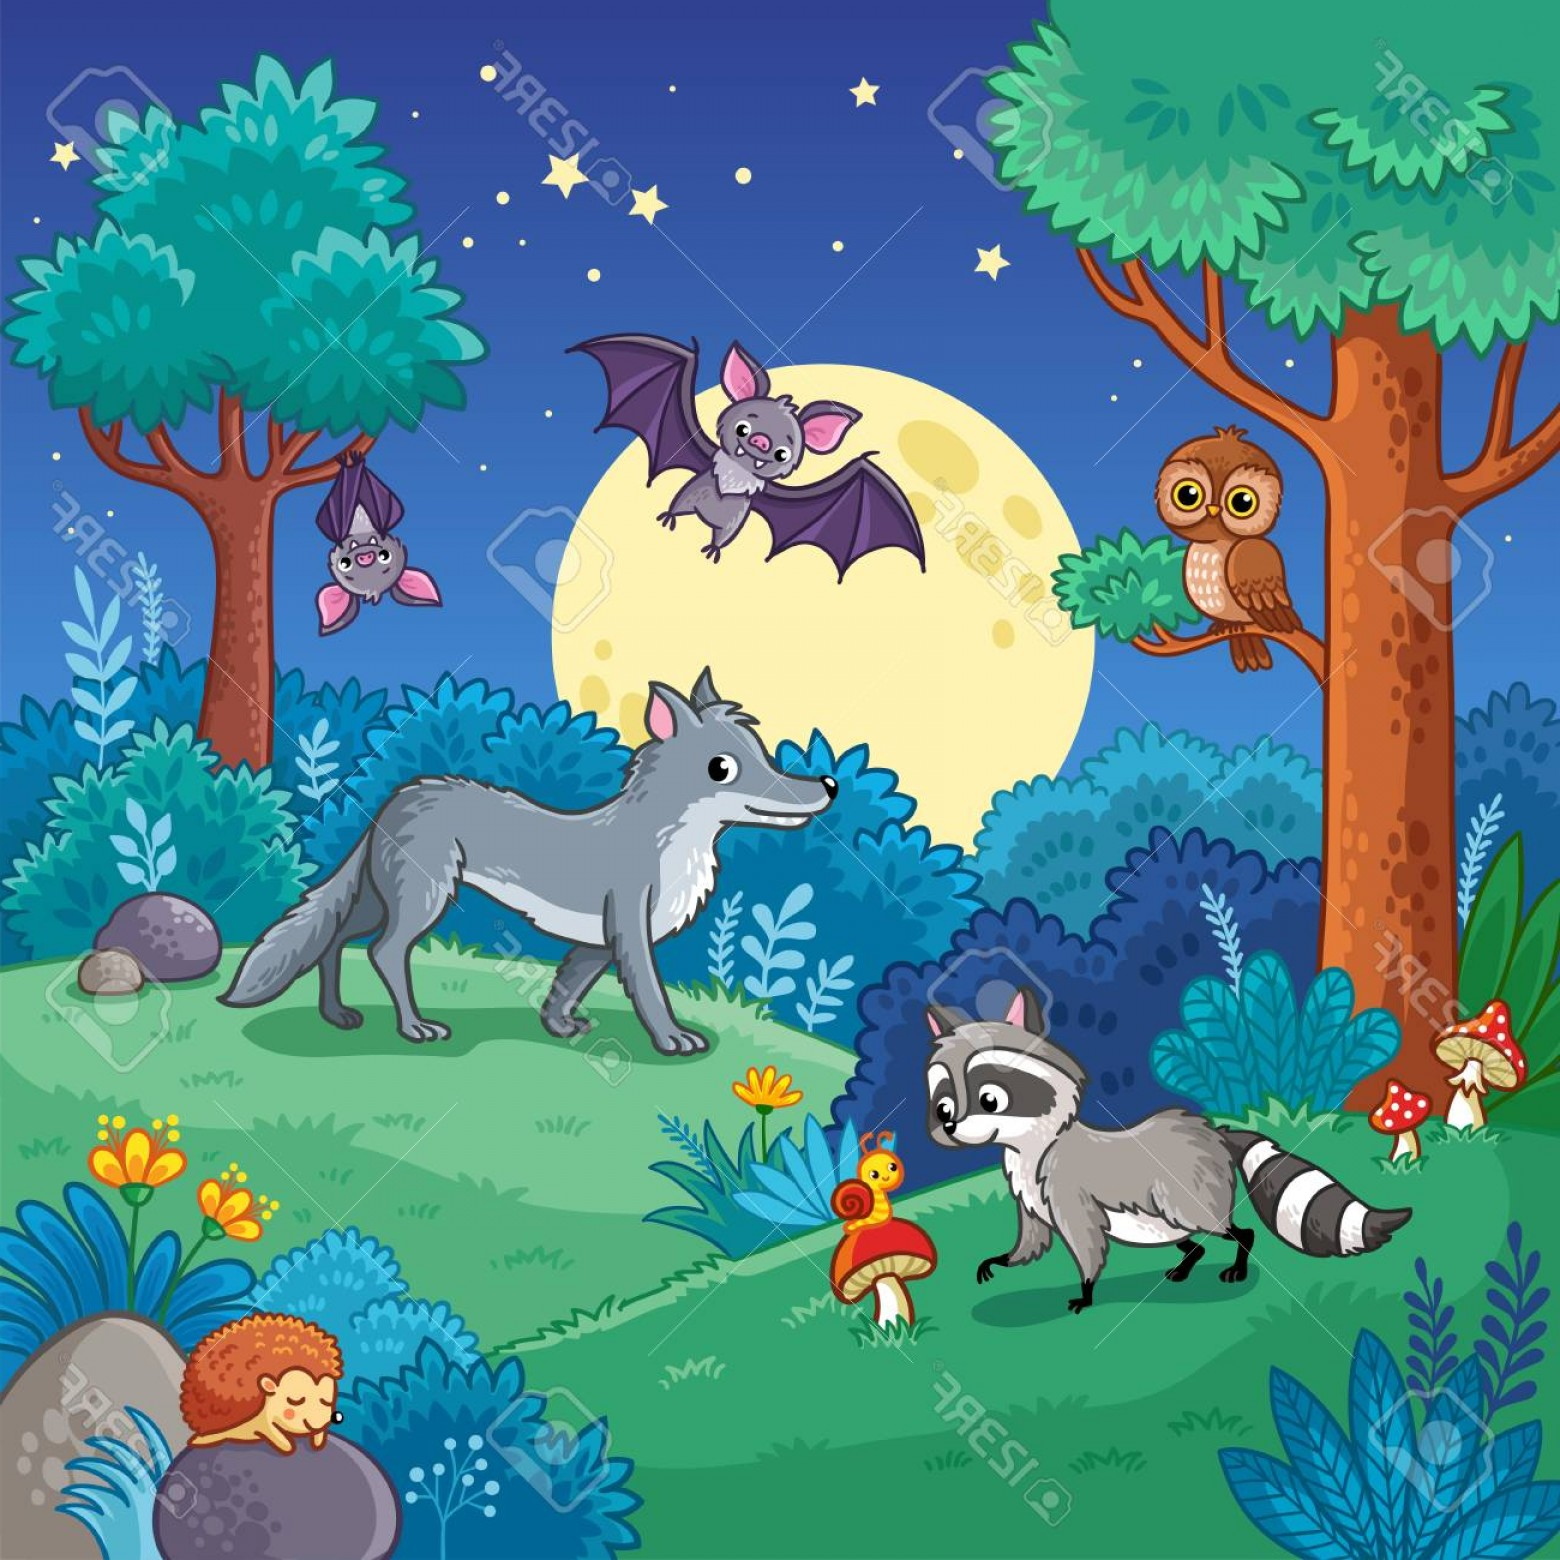 Calm Wolf Vector: Photostock Vector Background With Animals In The Night Forest Vector Illustration With Wolf Raccoon Bat In Children S